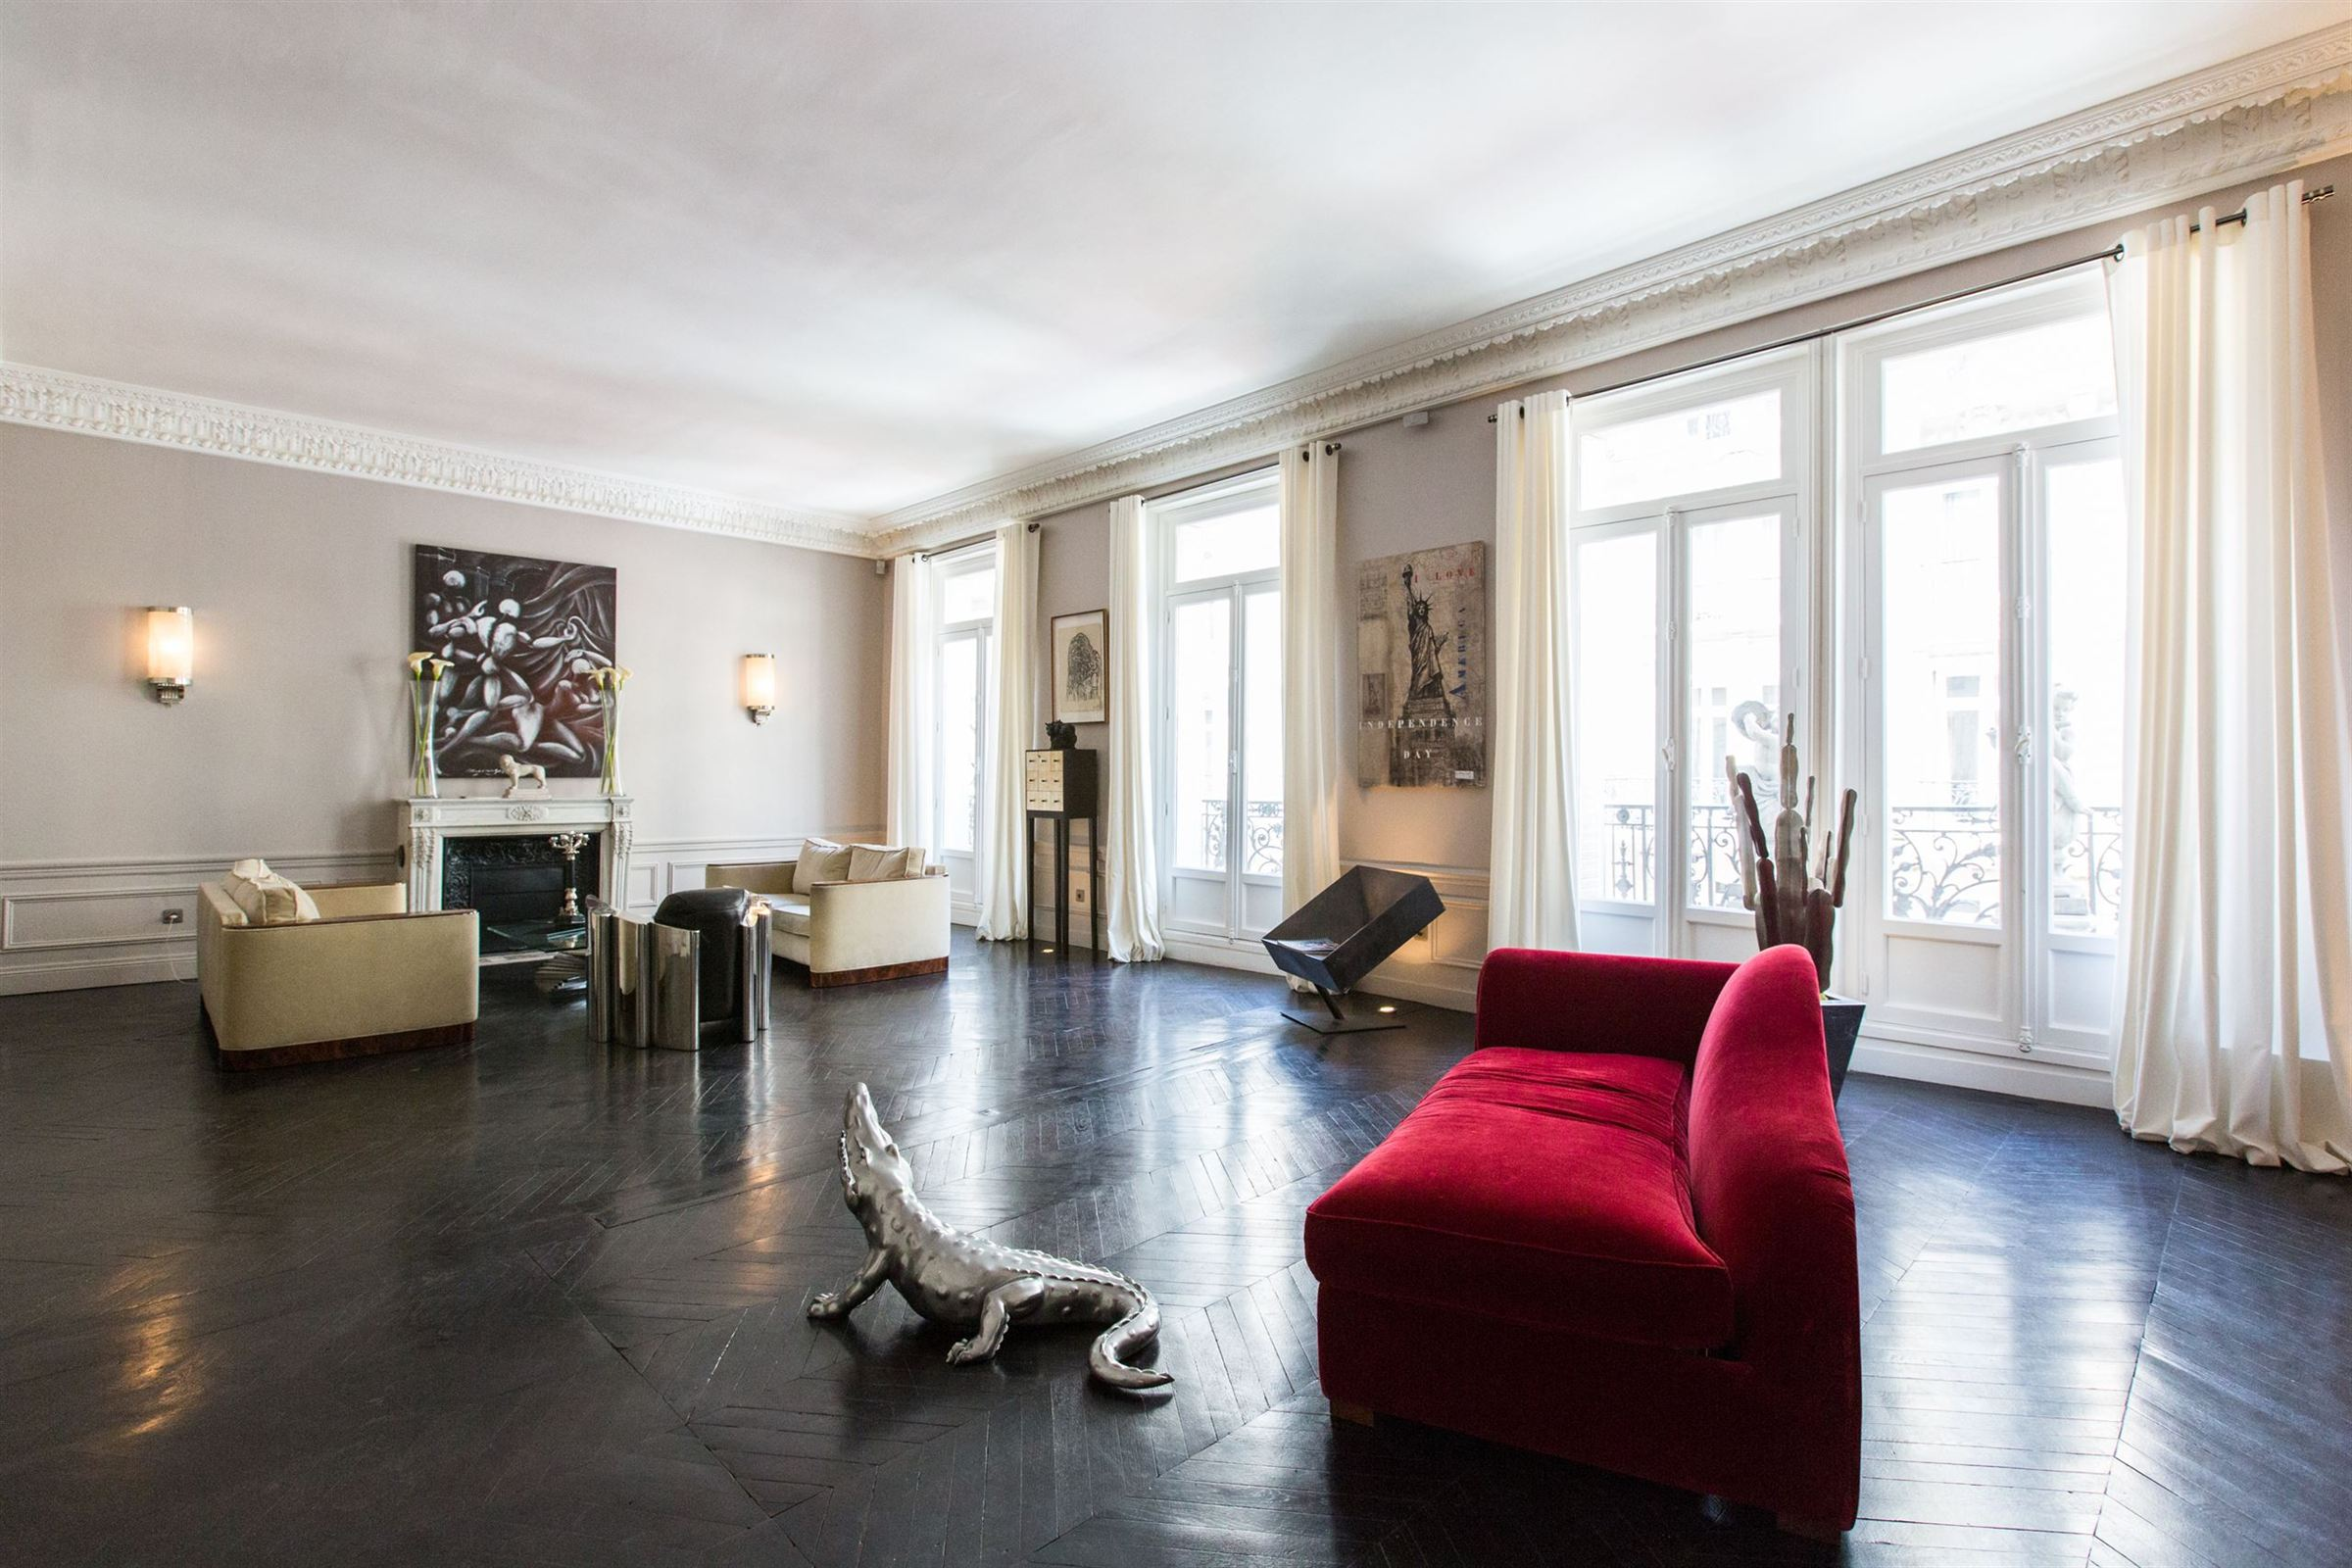 sales property at 75008 - Apartment near Triangle d'Or Avenue Montaigne